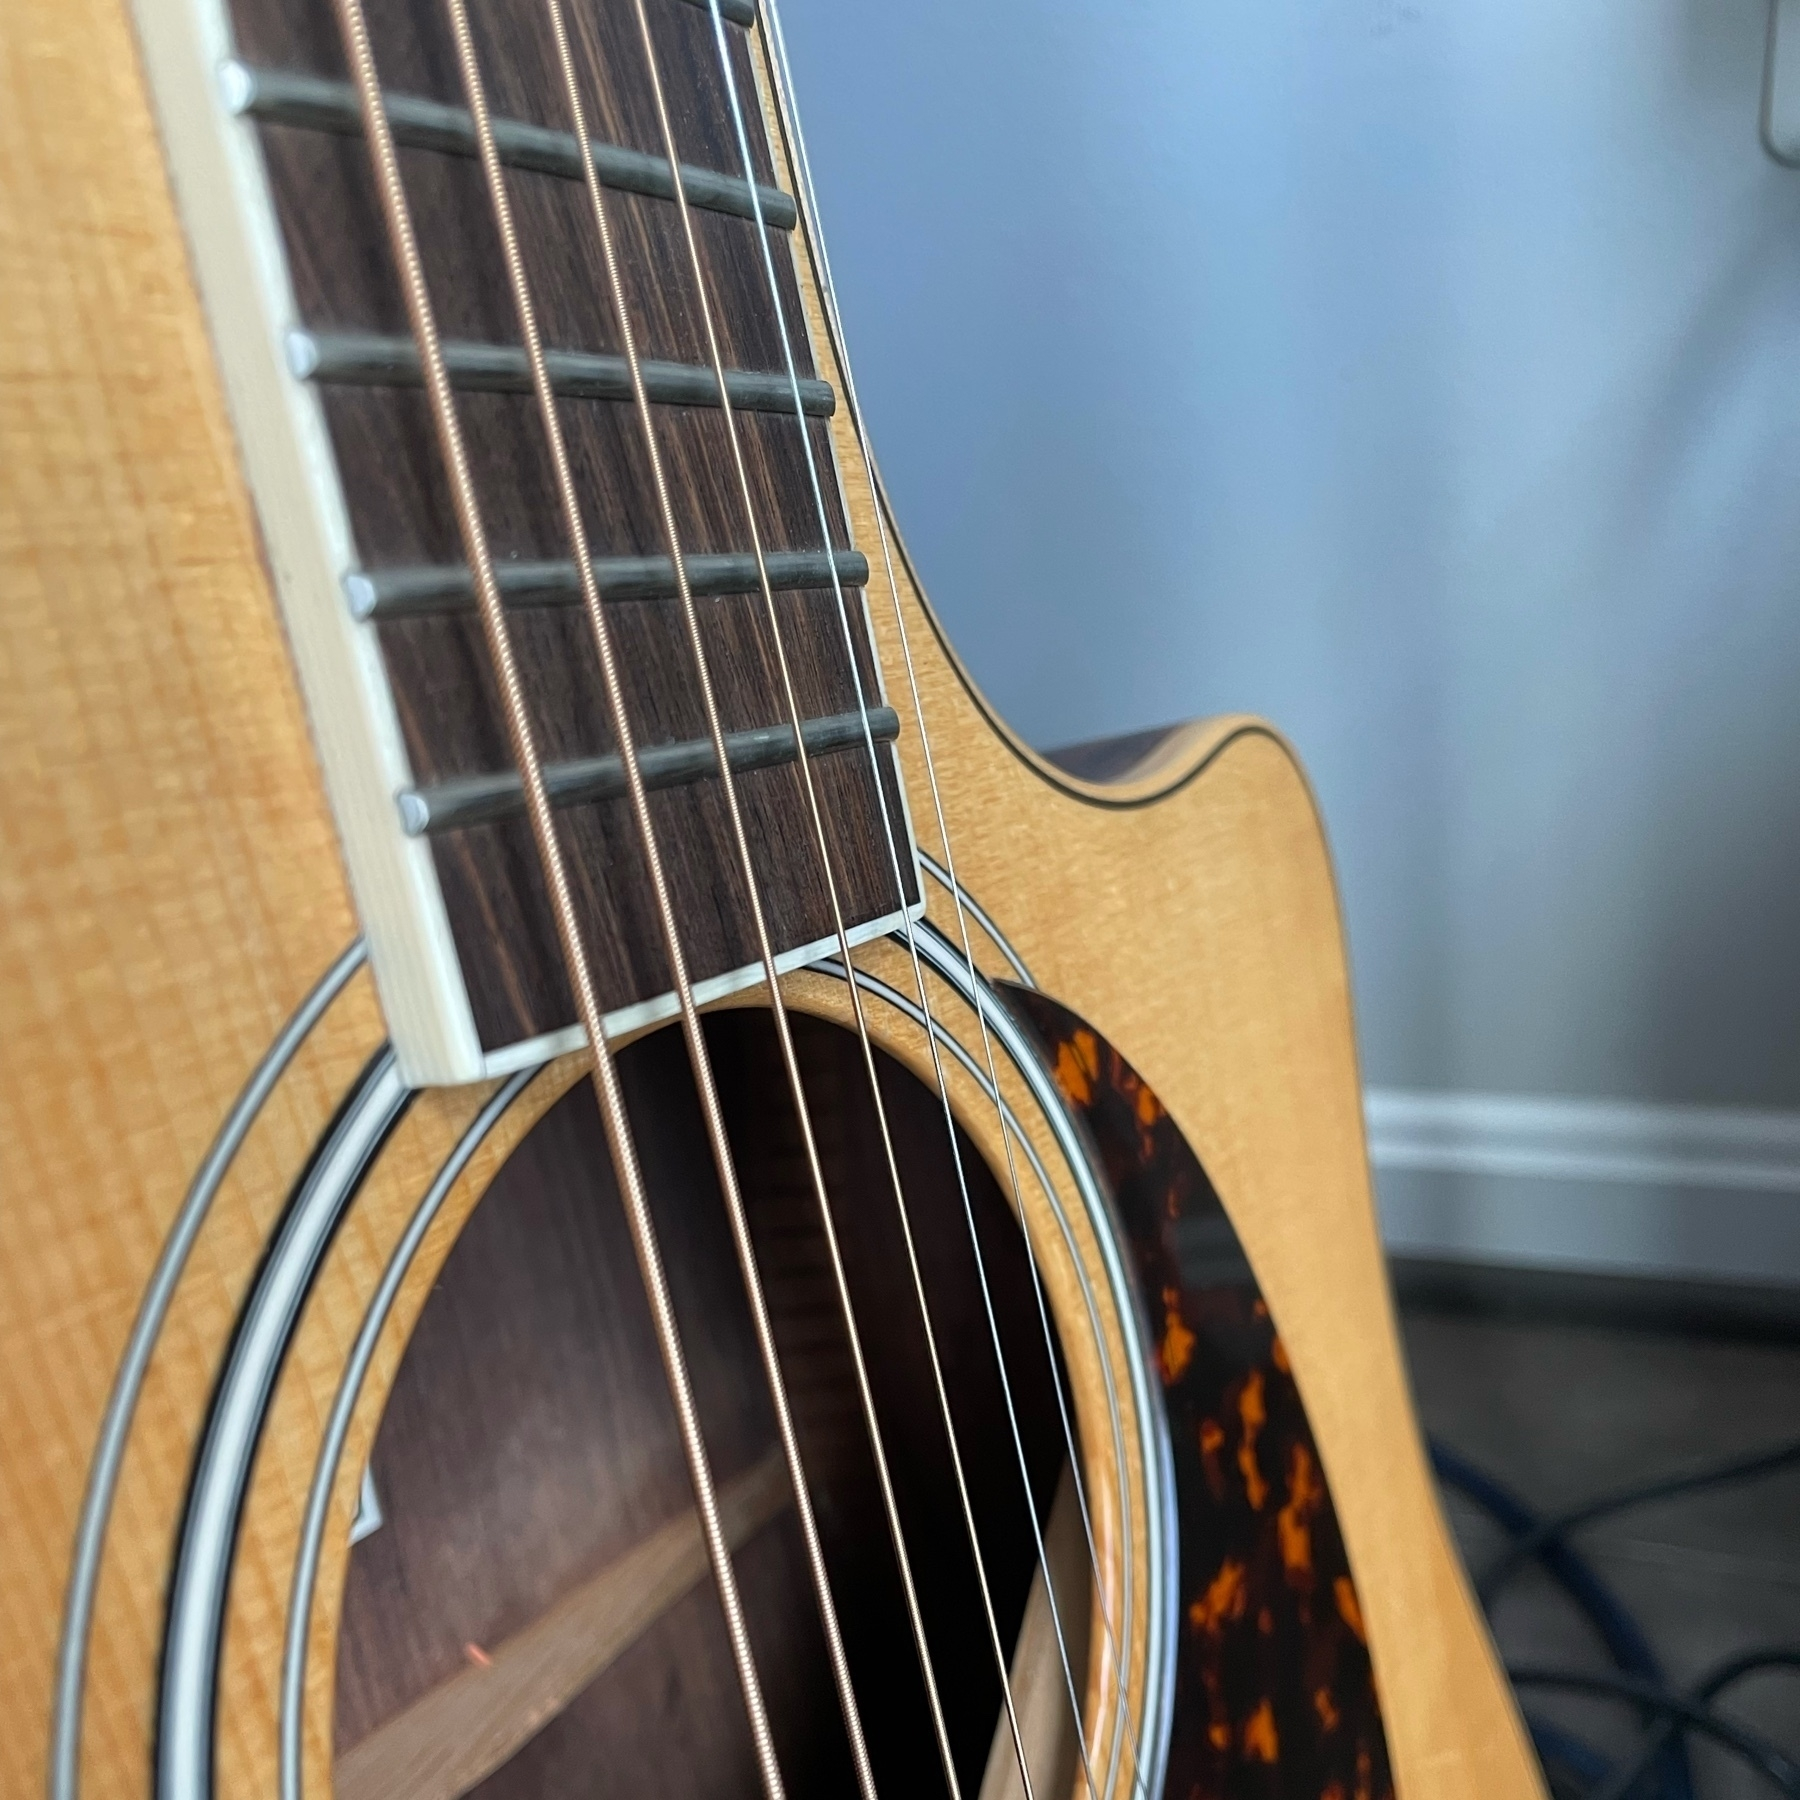 Close up of my acoustic guitar, where the neck meets the body, with a new set of strings.